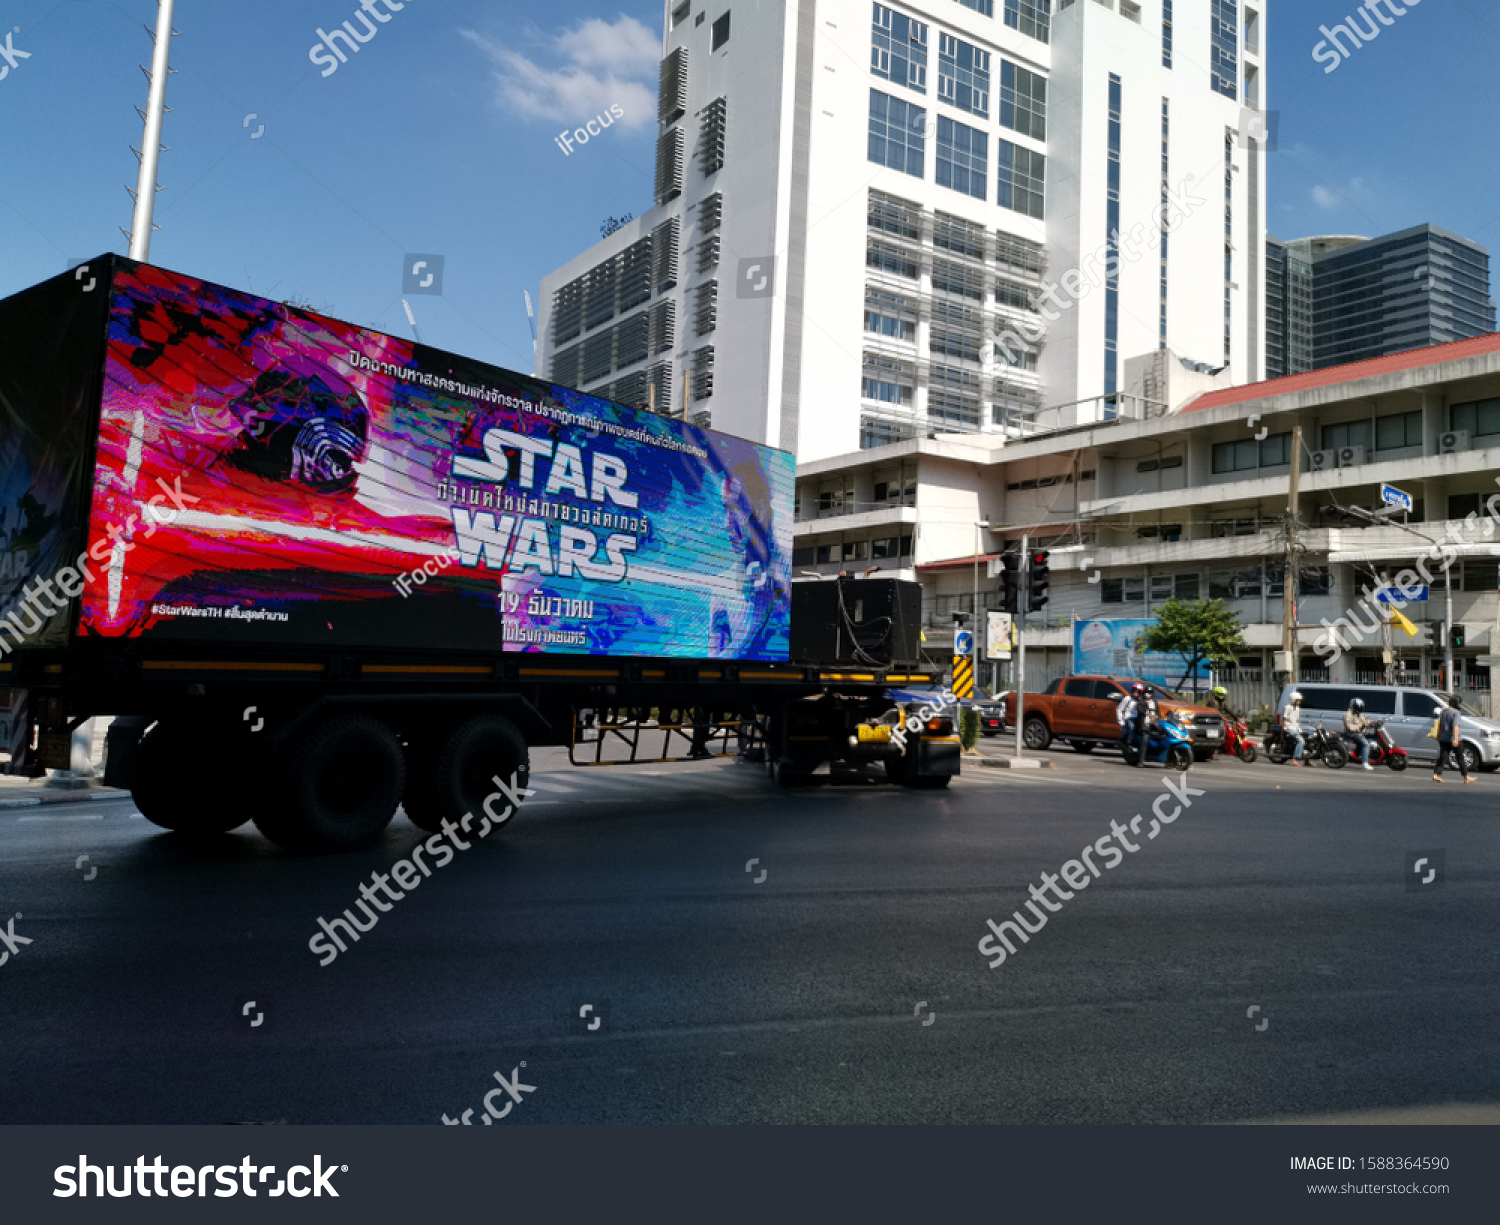 BANGKOK, THAILAND - DECEMBER 24, 2019: A lorry with digital billboard advertisement for Star Wars is spotted on the streets on December 14, 2019 in Thai capital Bangkok